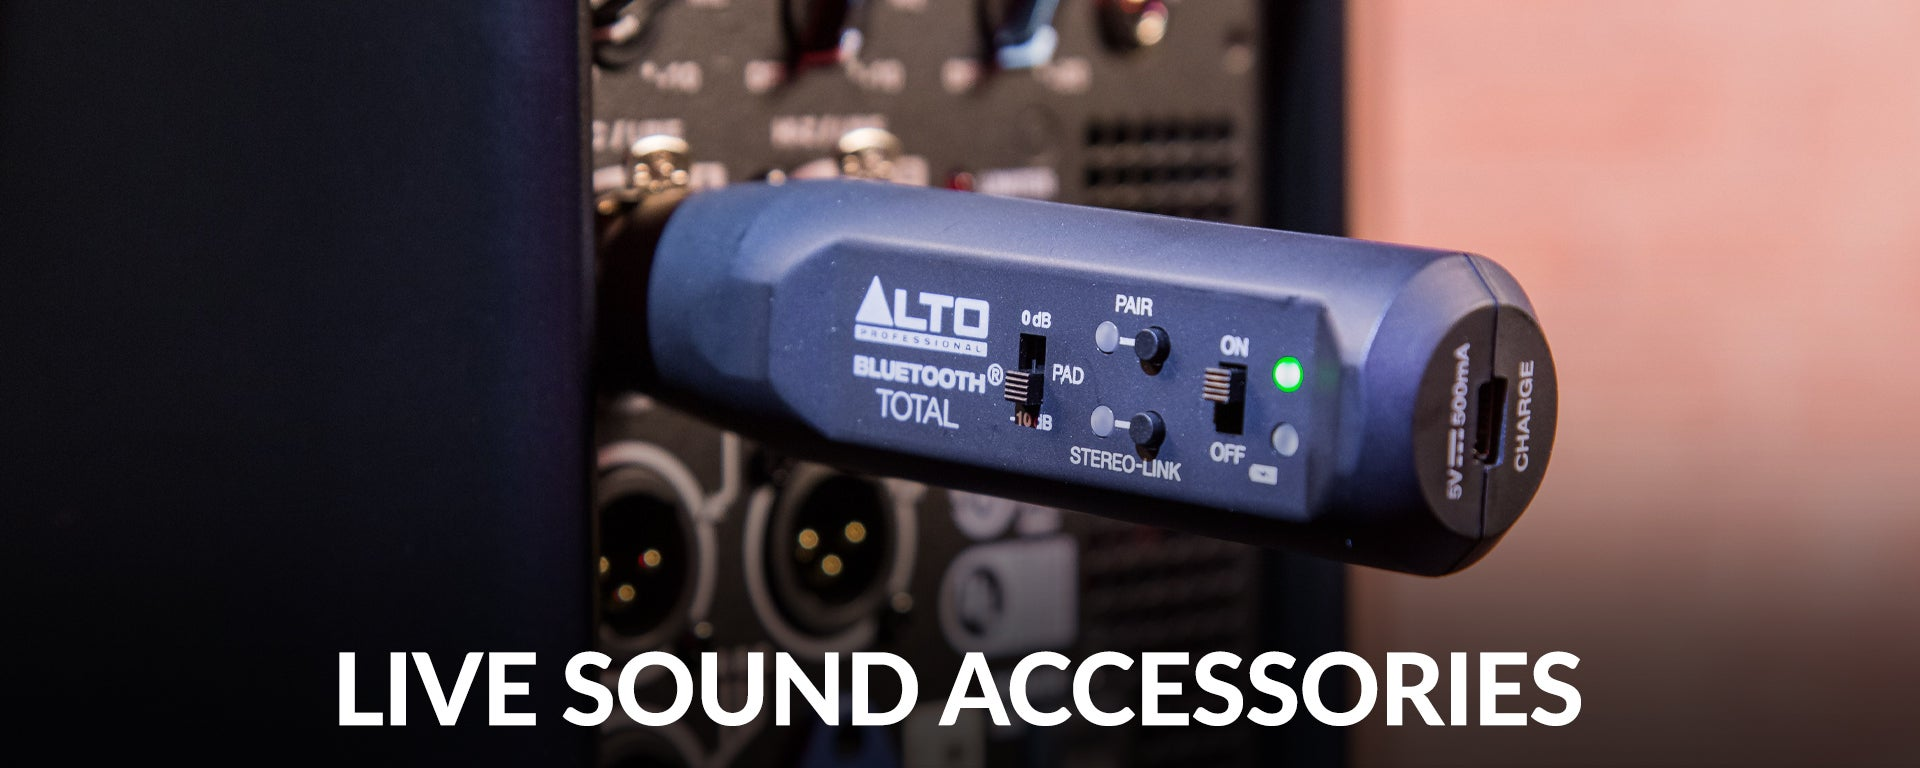 Shop the best selection of Live Sound Accessories at SamAsh.com and get the lowest price and fast, free shipping.